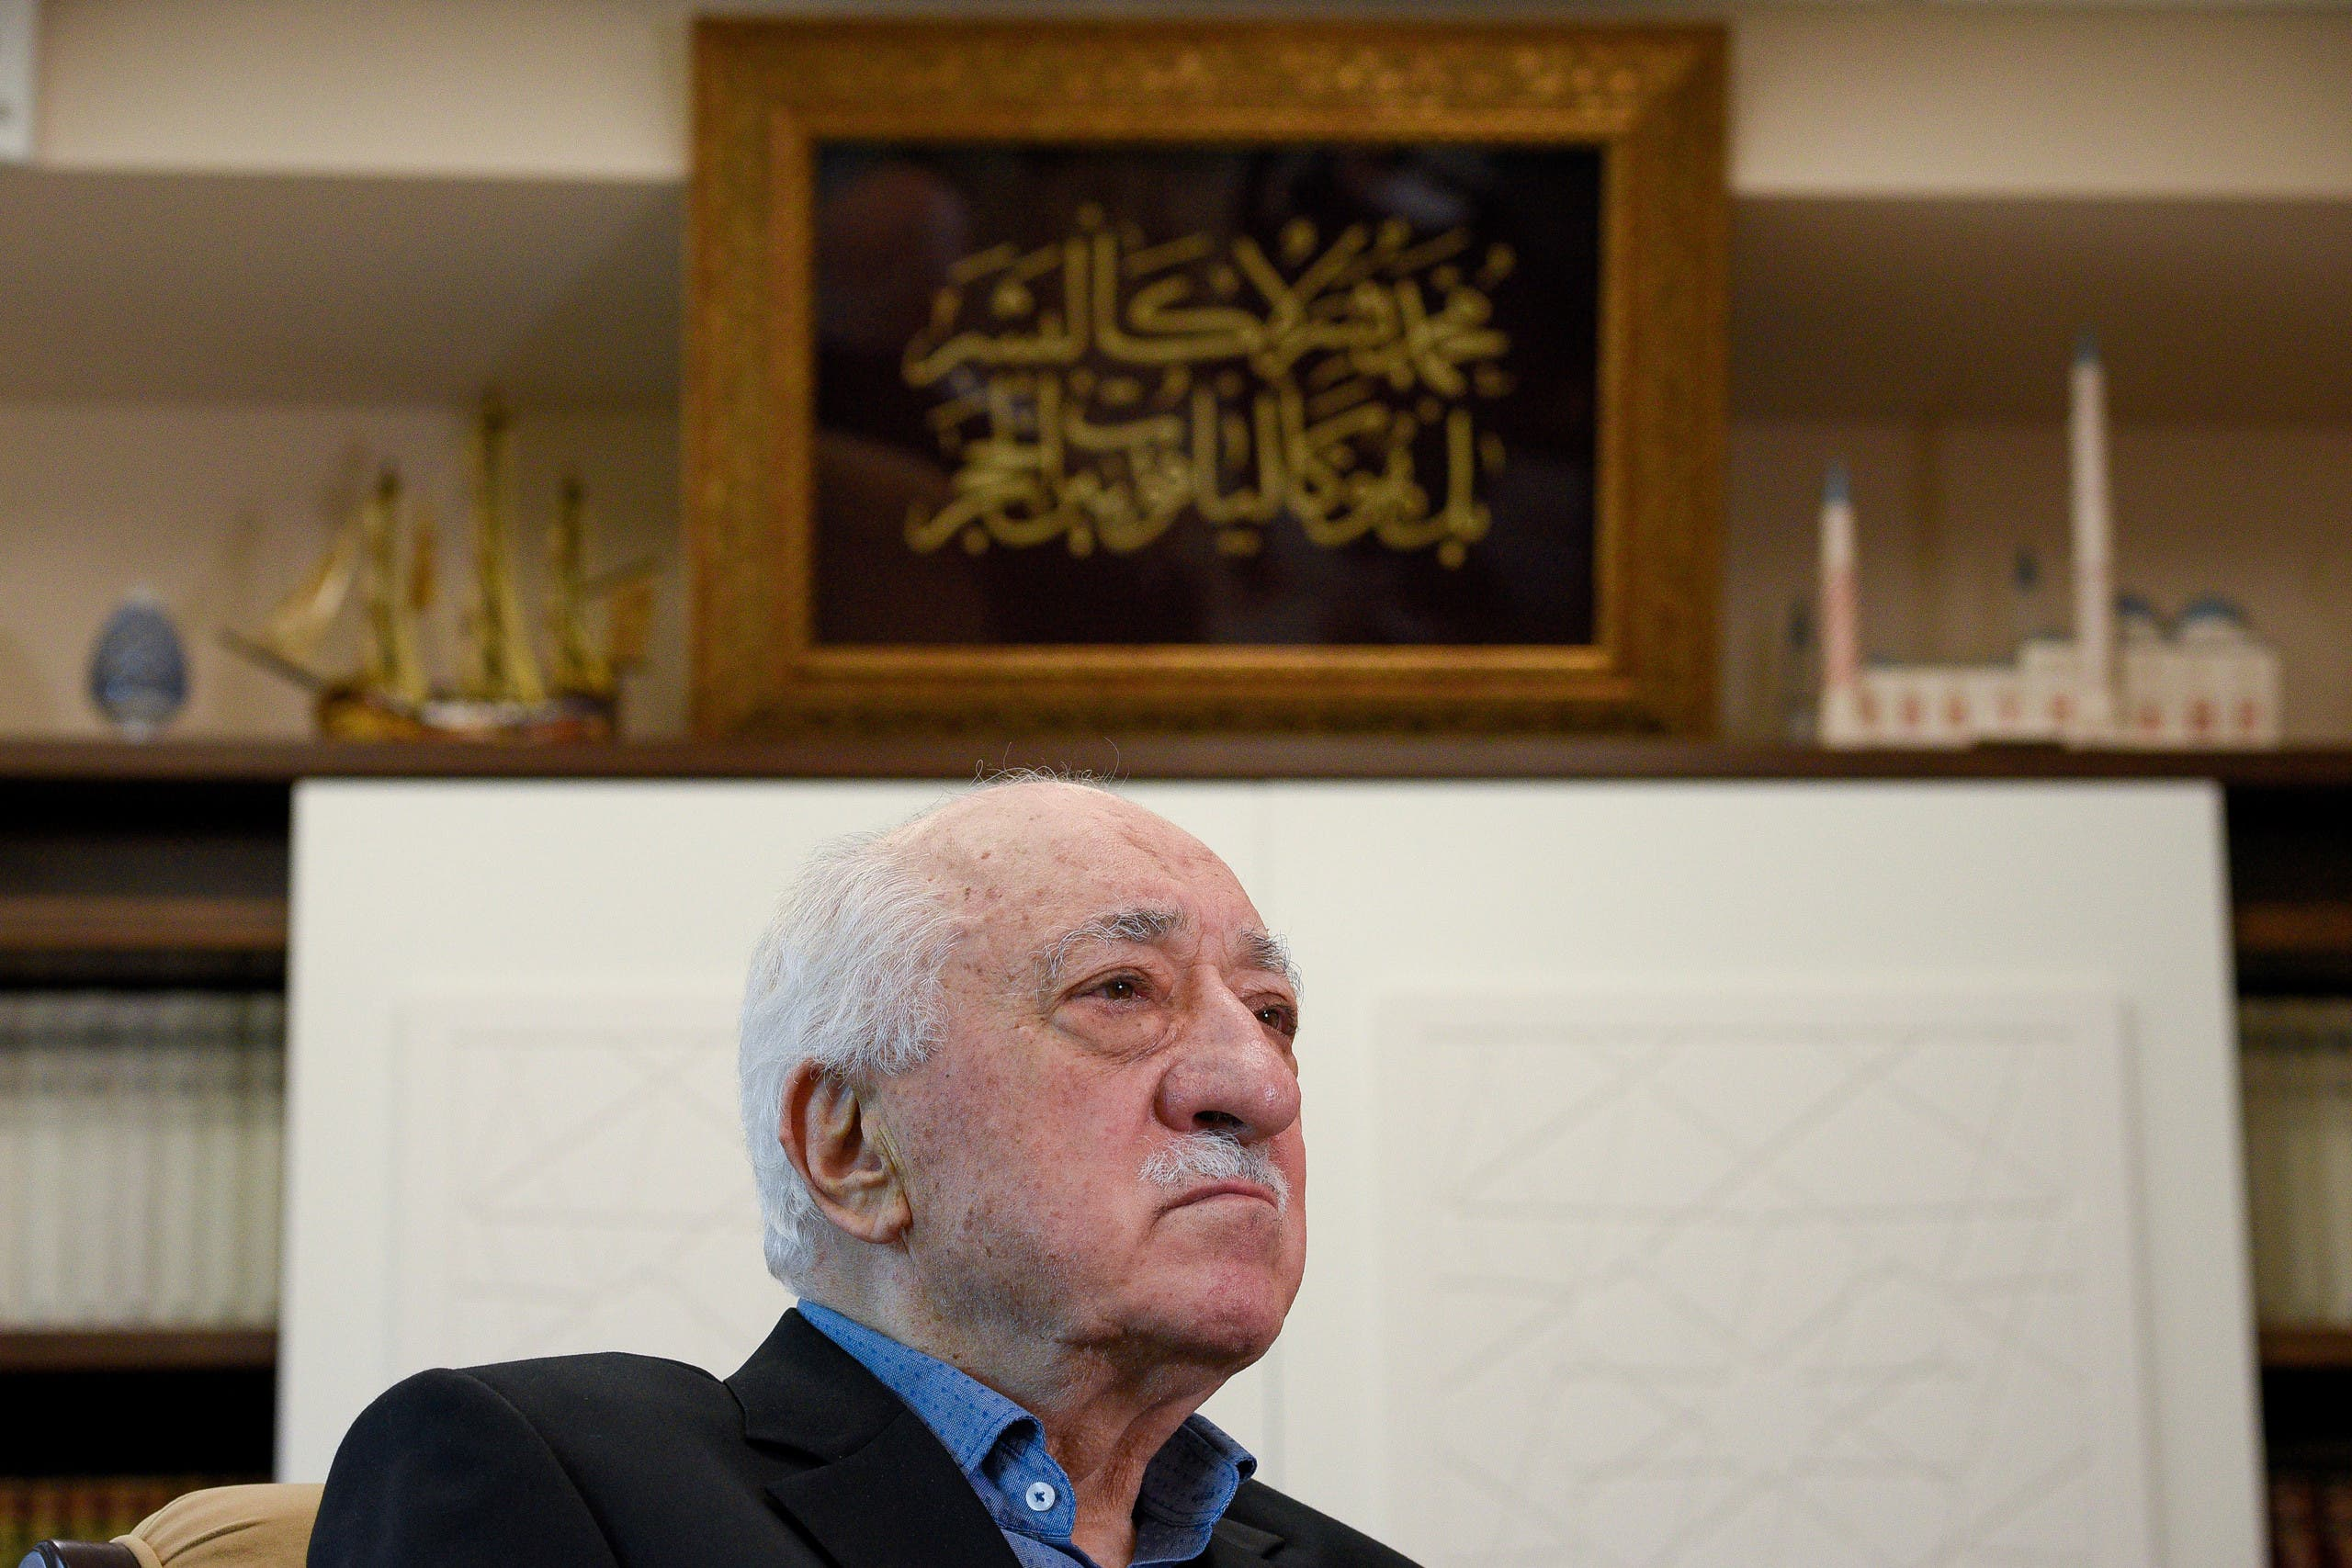 Fethullah Gulen at his home in Saylorsburg, Pennsylvania on July 10, 2017. (Reuters)